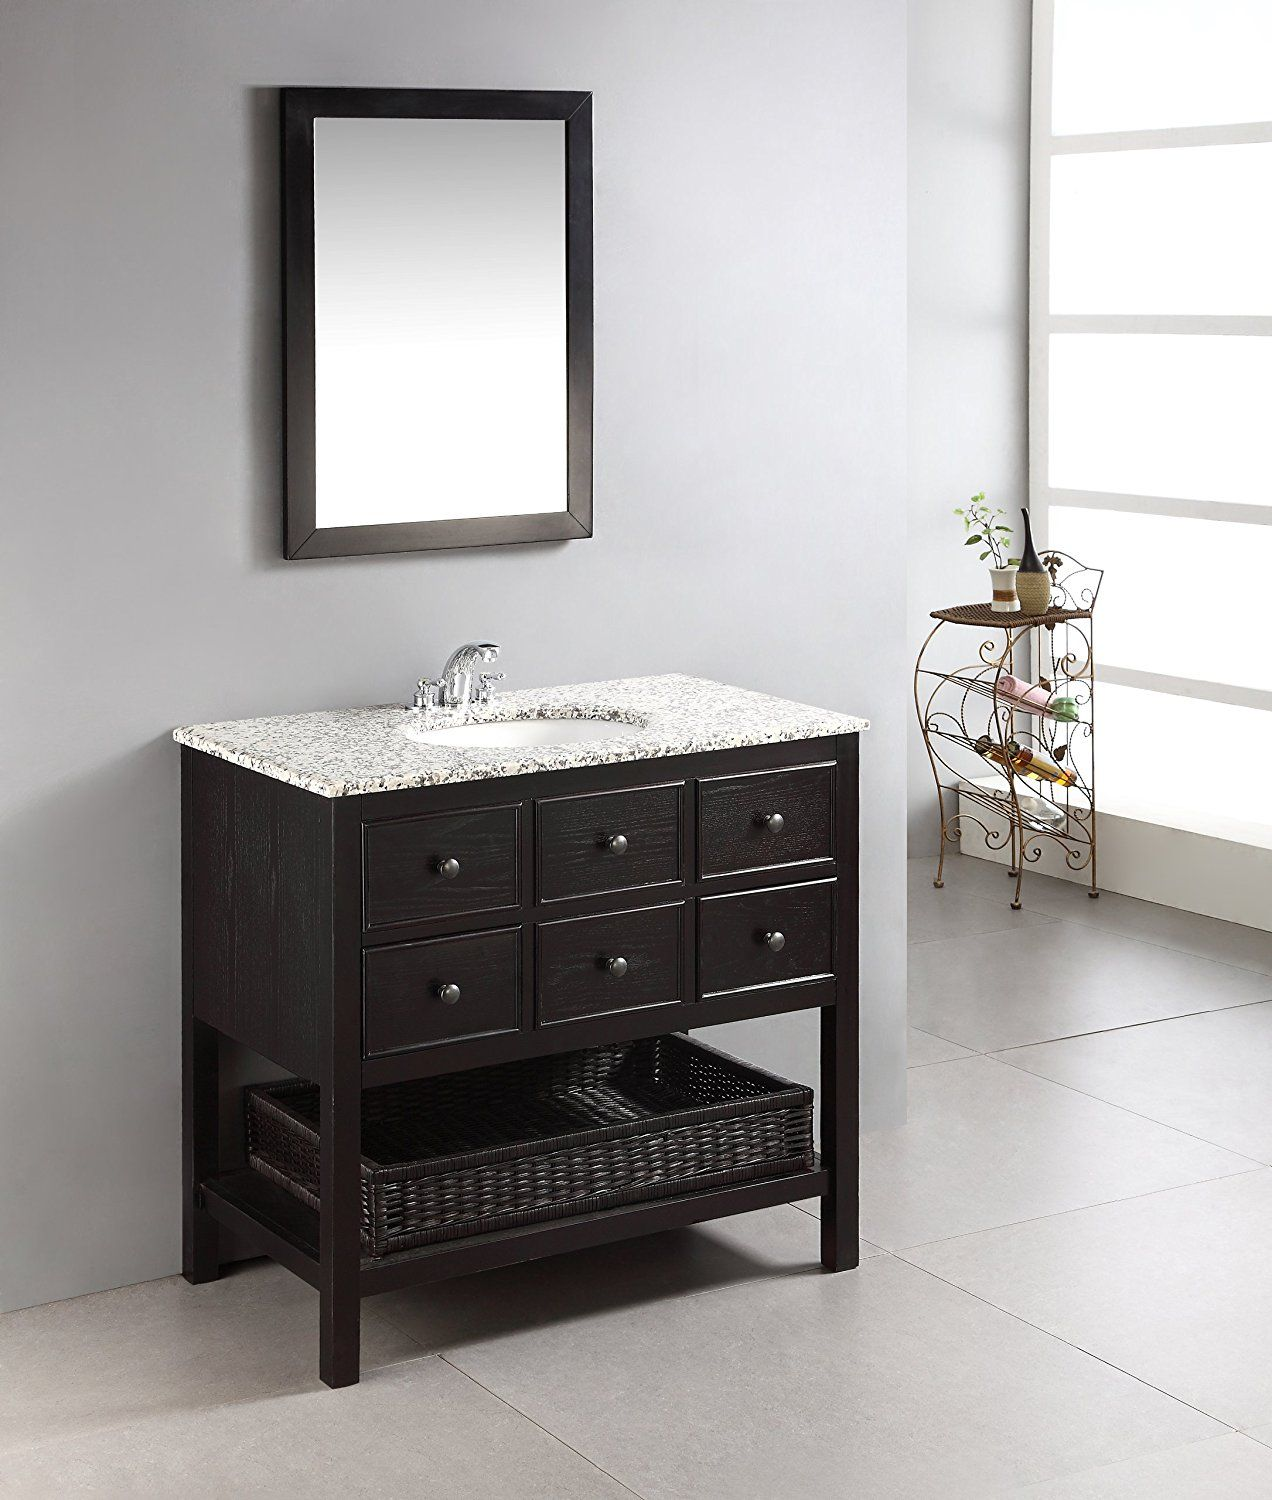 and allen top lowes roth bath vanity matchless bathroom vanities inch